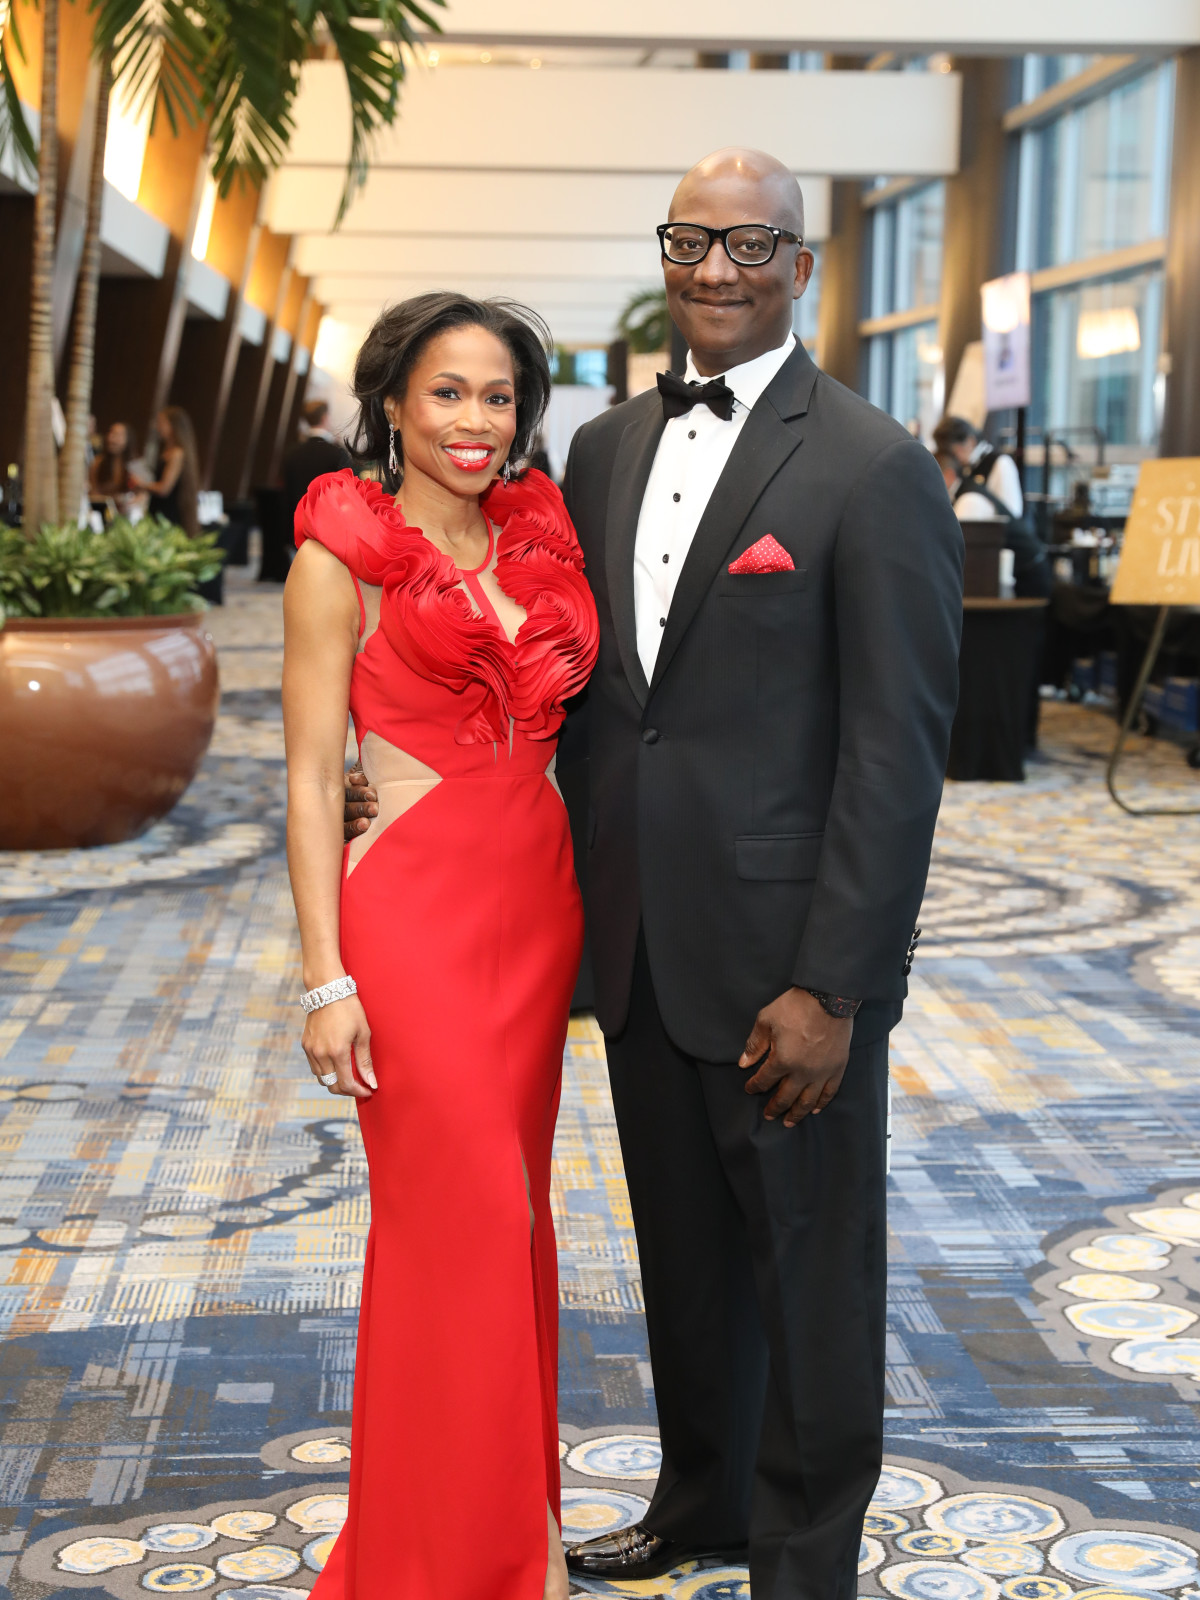 Heart Ball 2020 Roslyn Bazzell Mitchell and Derrick Mitchell